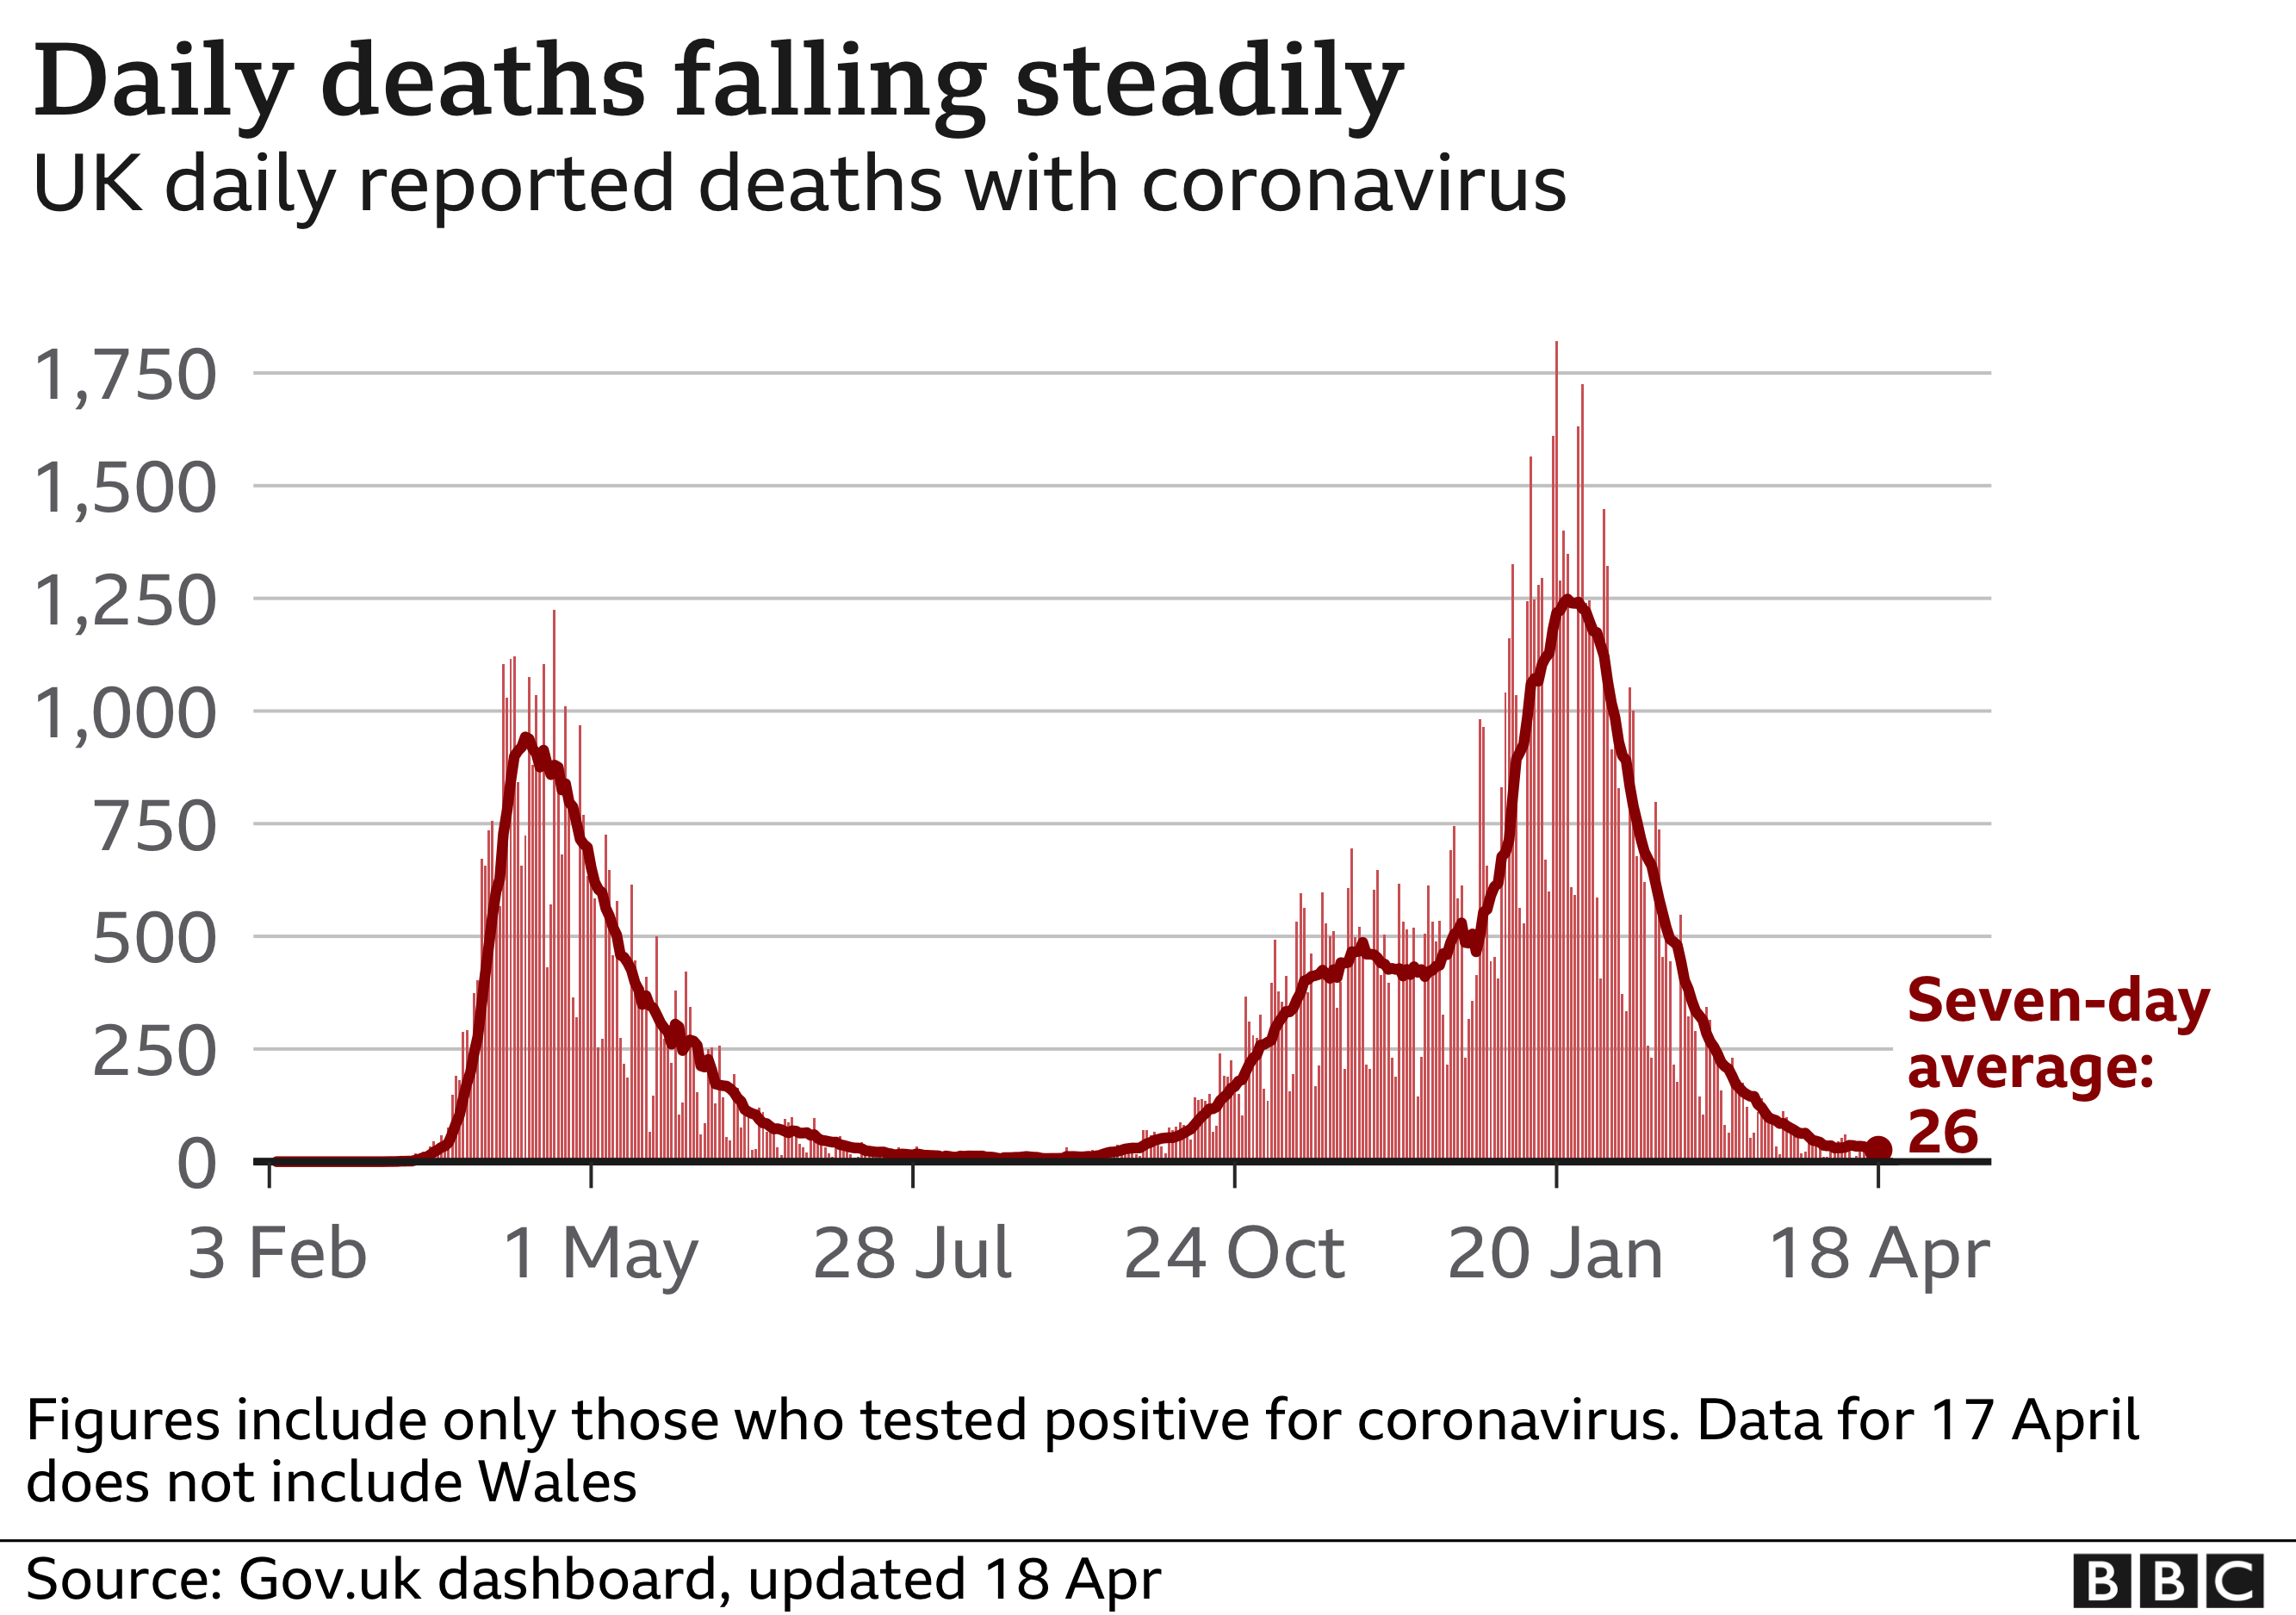 Graph showing the number of daily deaths within 28 days of a positive test recorded in the UK falling steadily